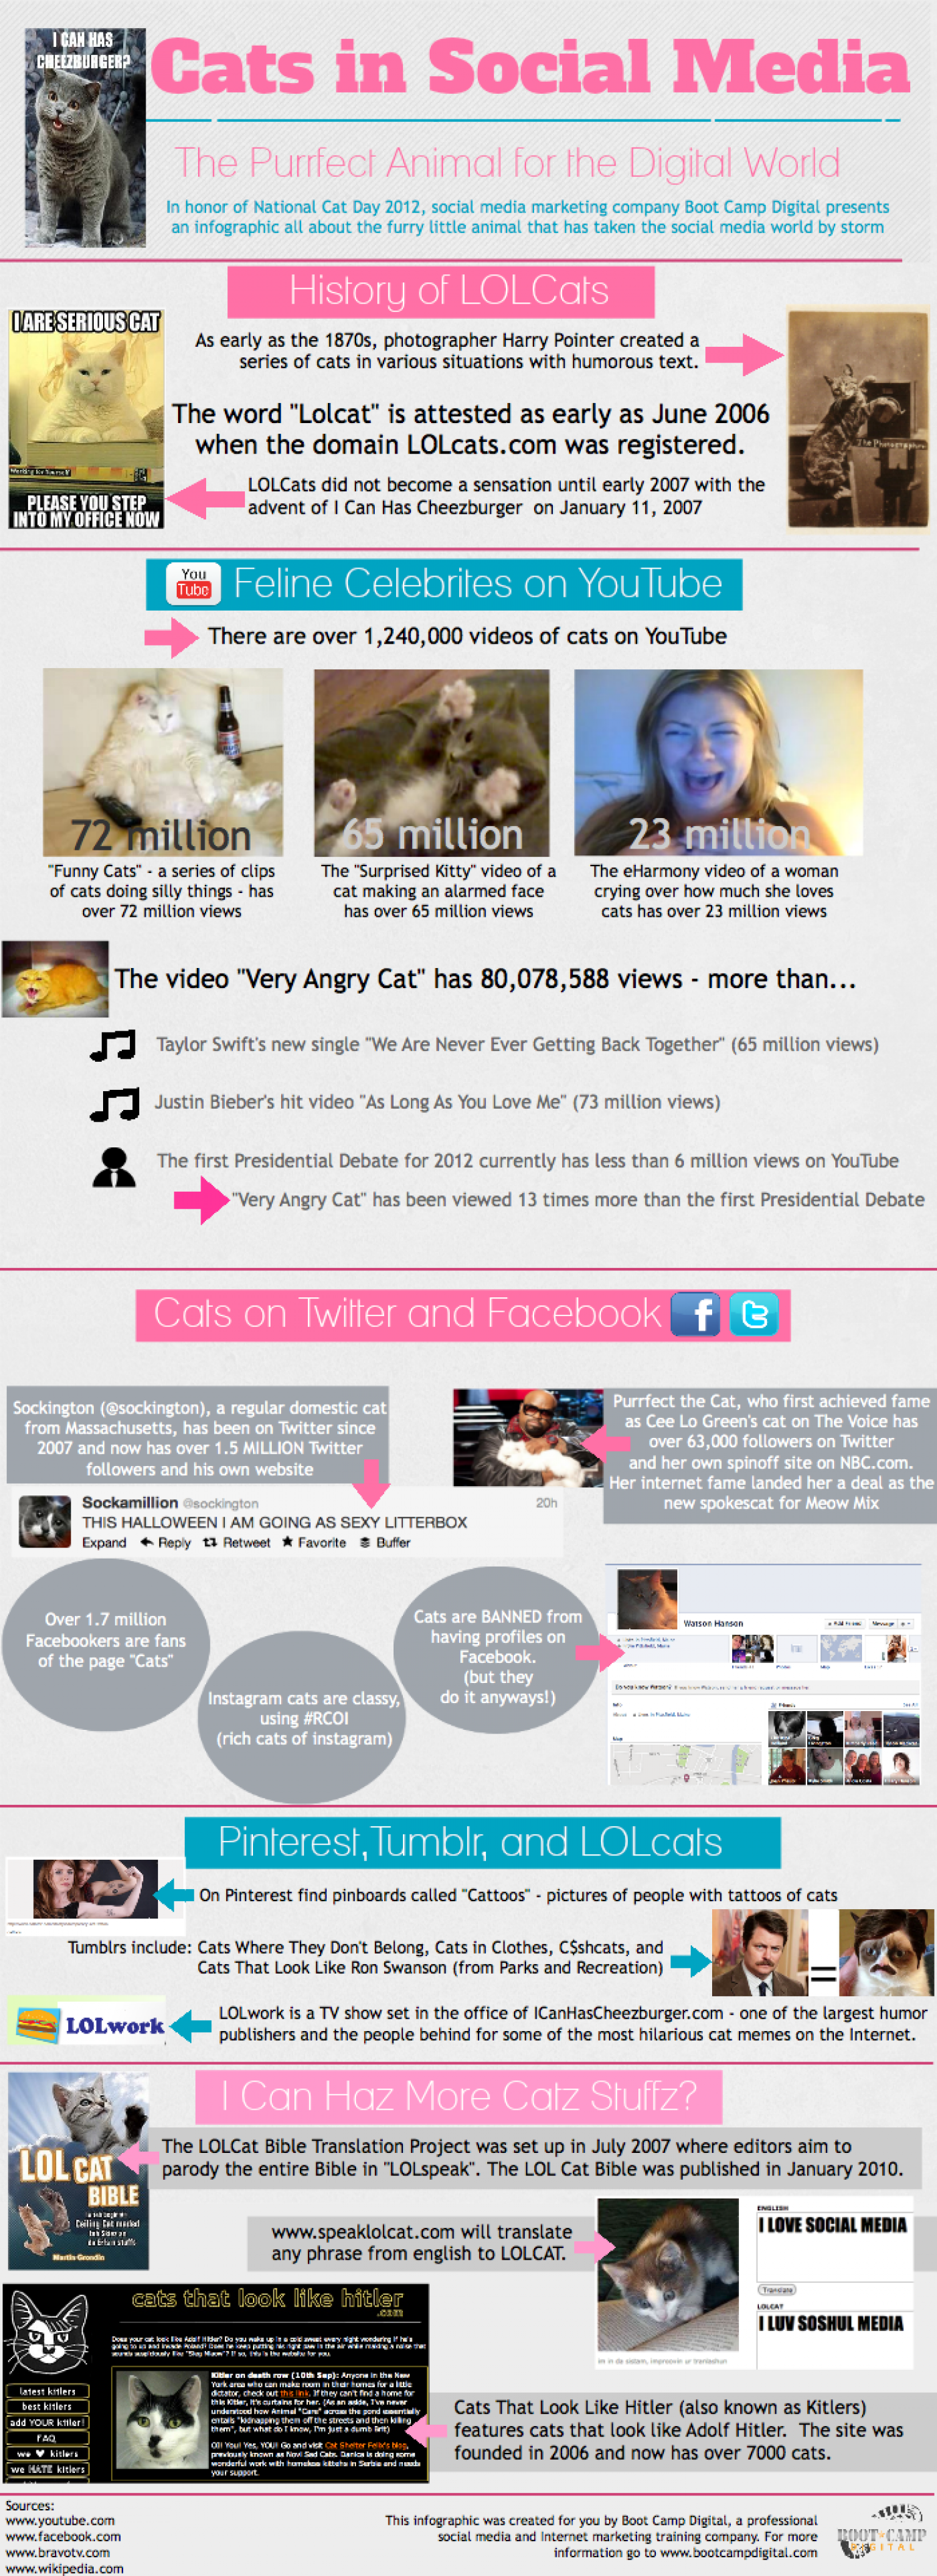 Cats in Social Media Infographic